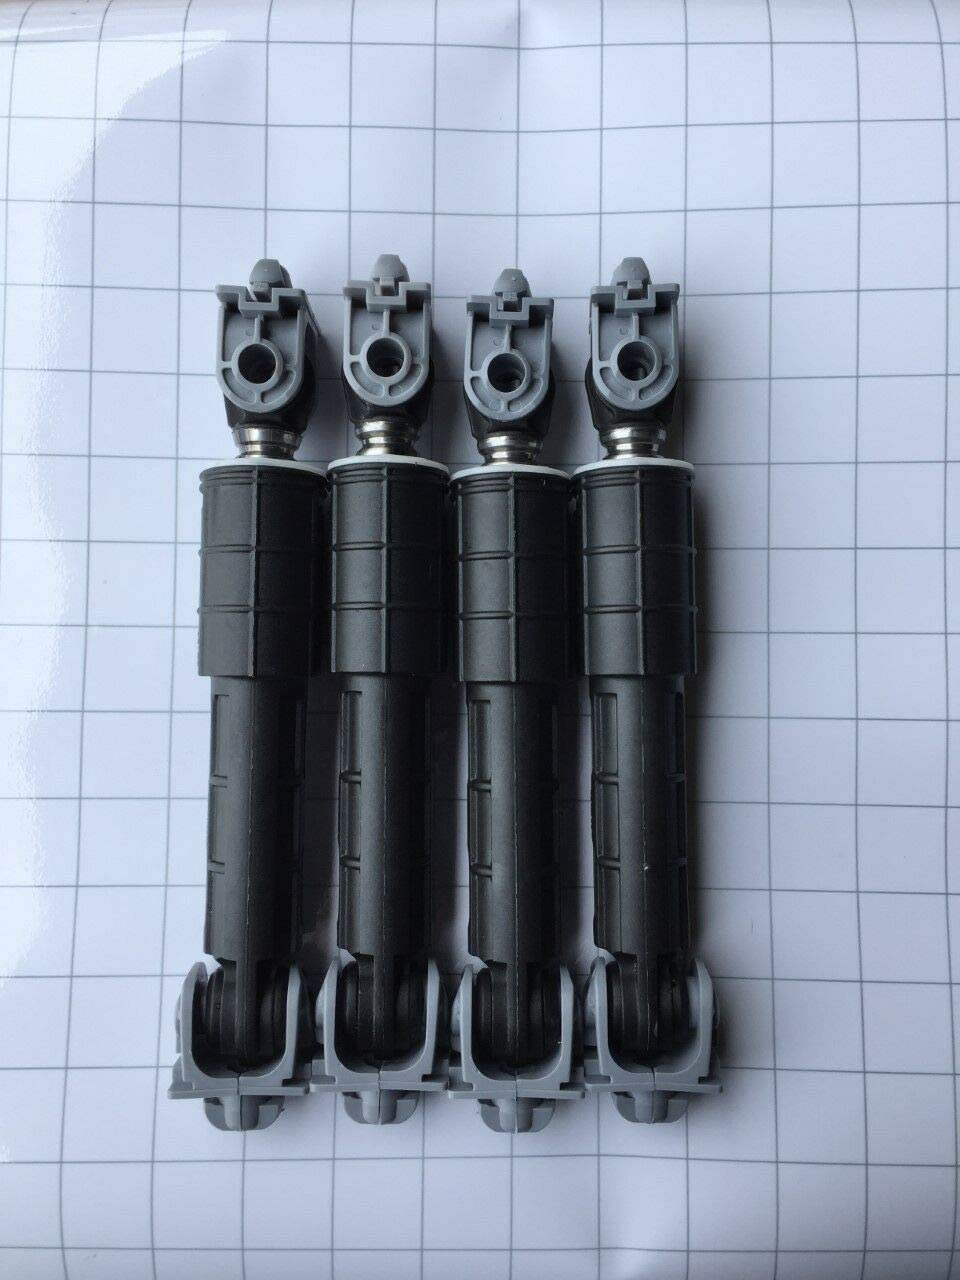 NEW Primeco 4 PACK W10822553, 8182812, Shock Absorber Compatible for Whirlpool W10015830, W10261477 Made by OEM Parts Manufacturer - 2 YEAR WARRANTY